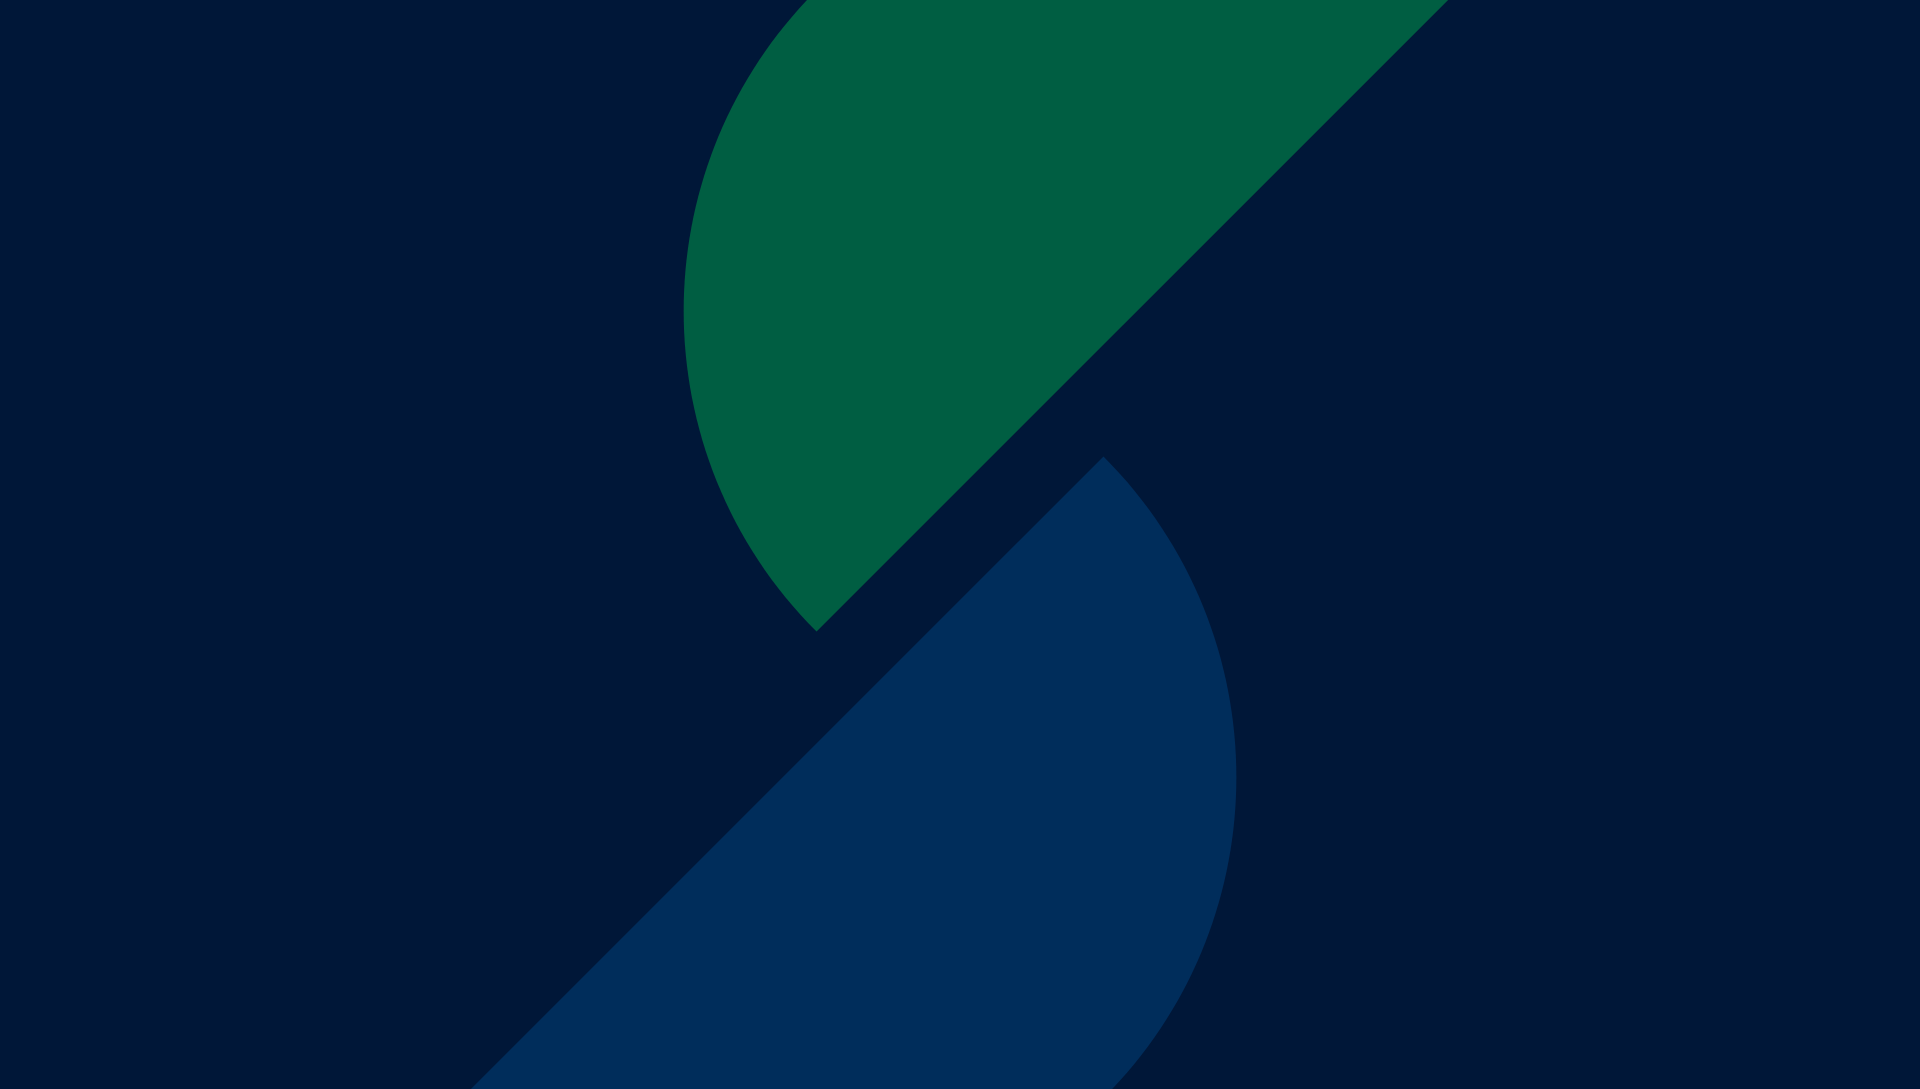 Abstract shapes in blue and green